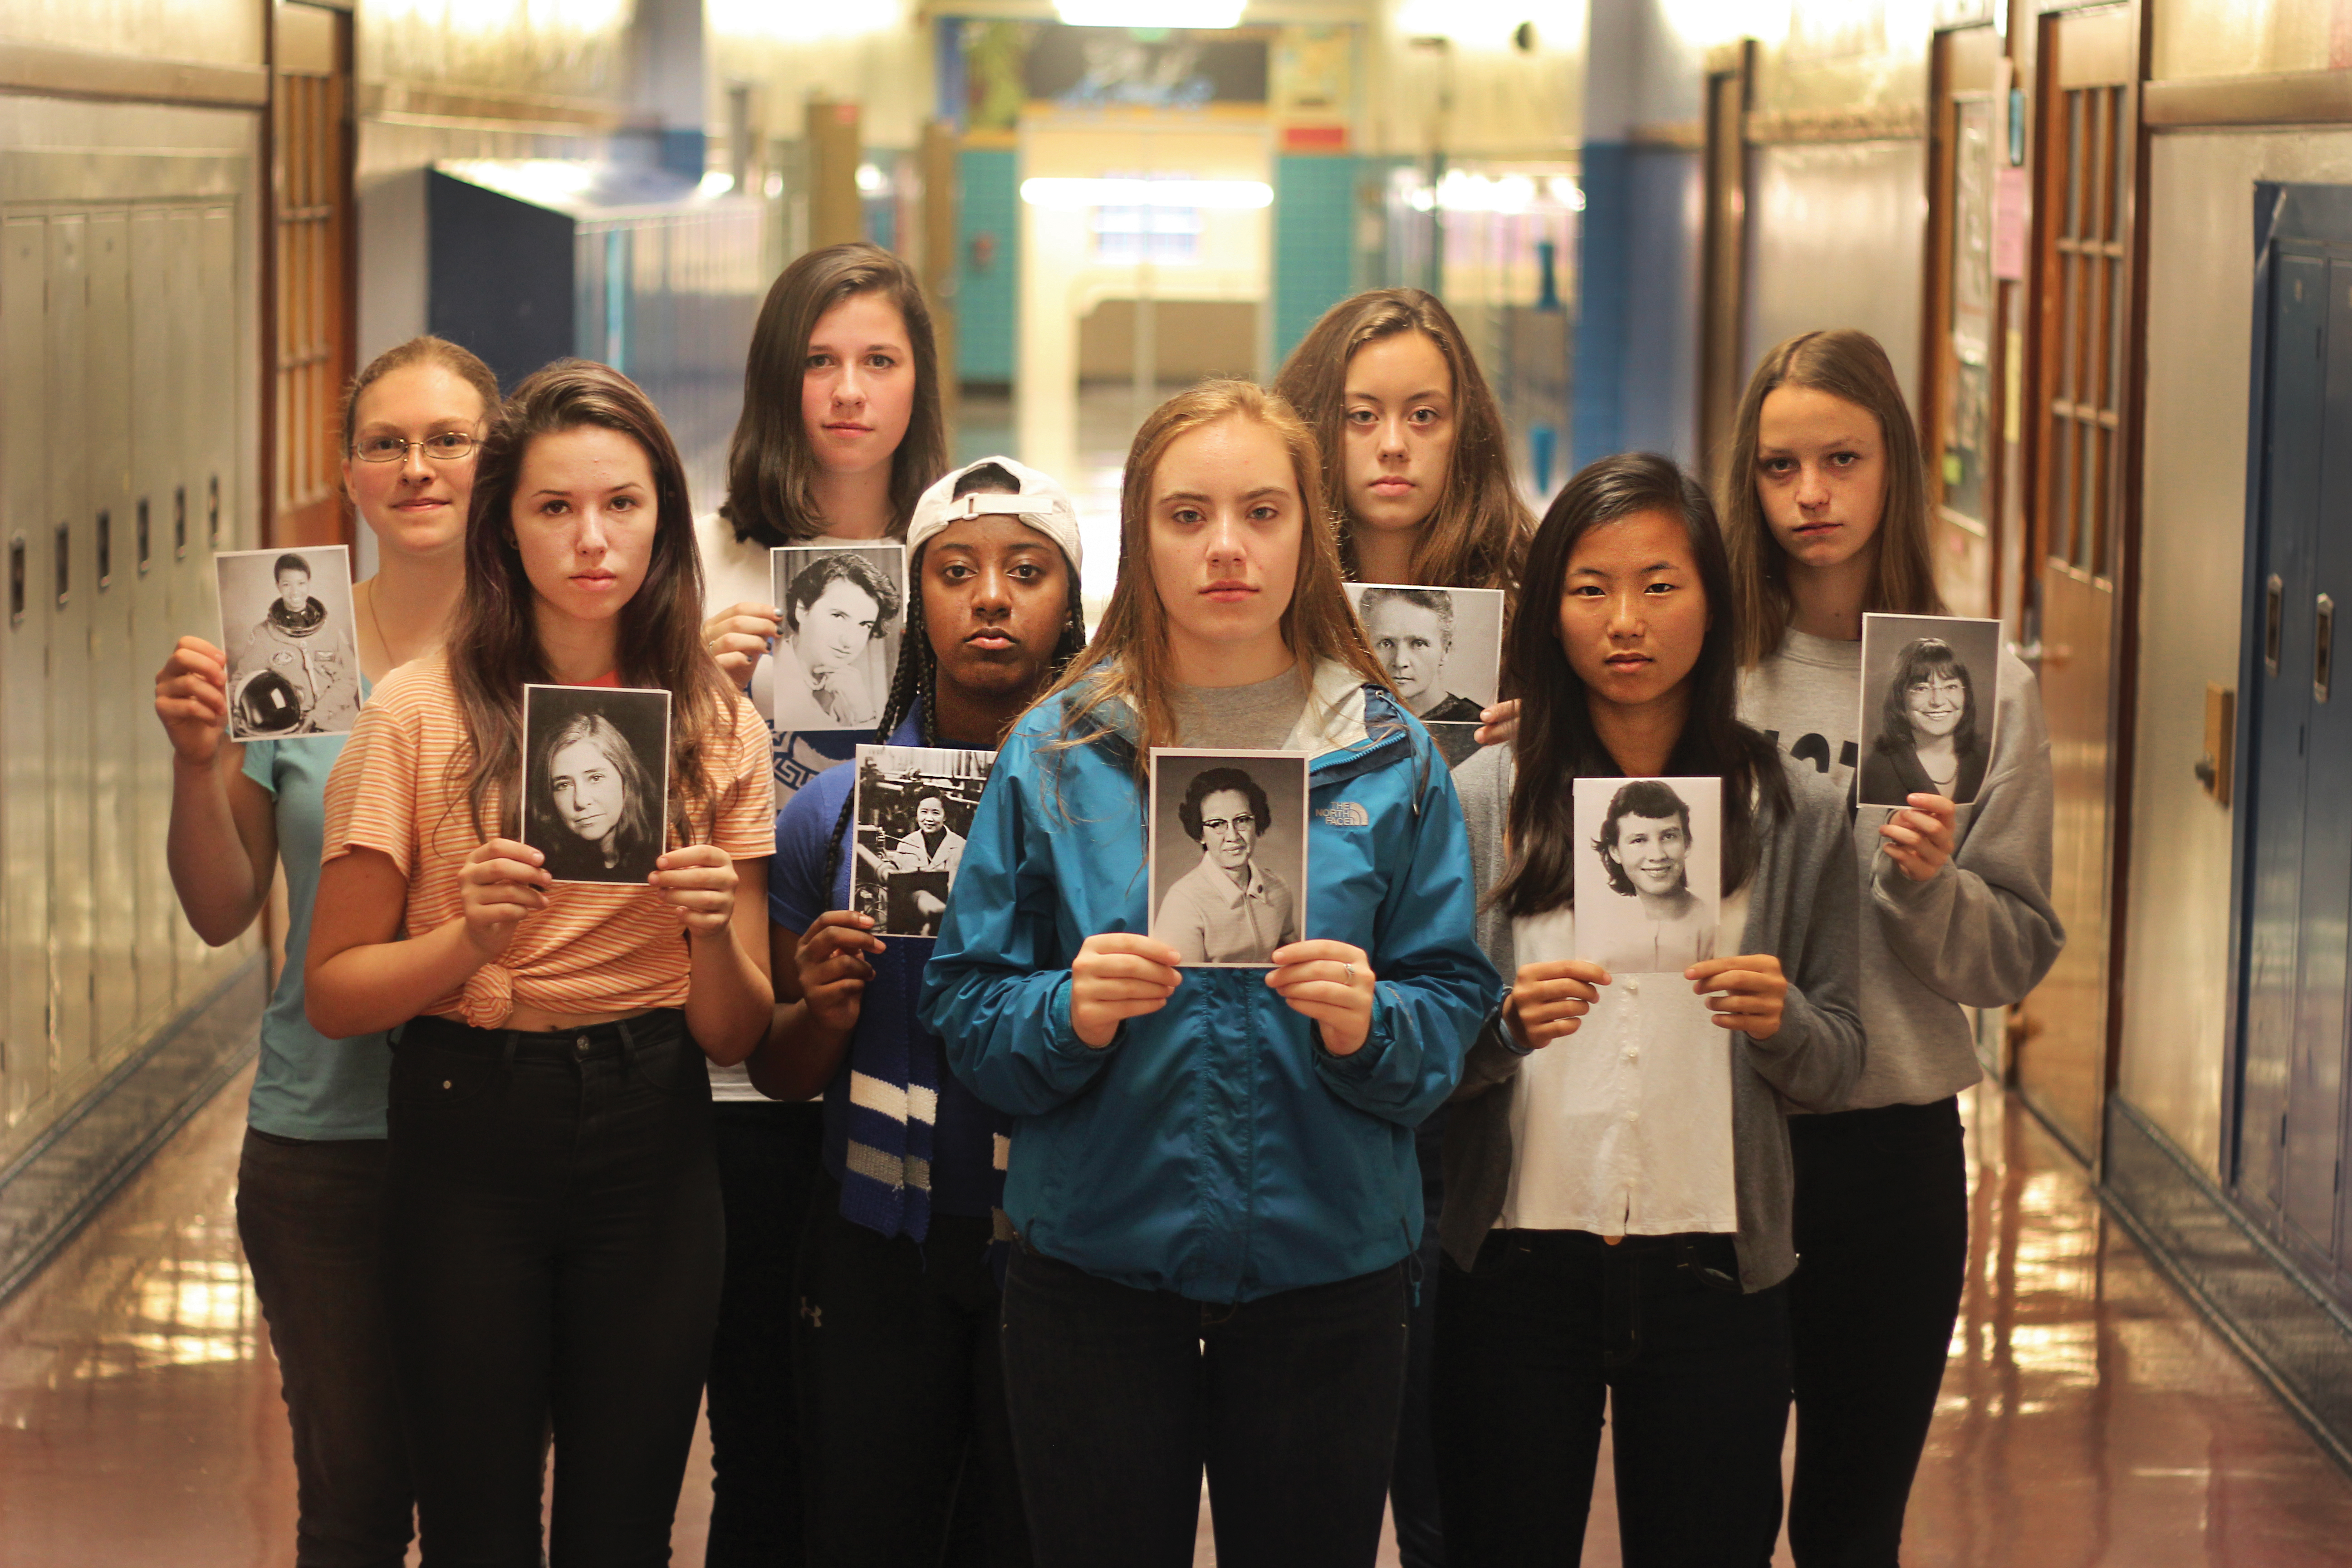 "Girls at Grant High School say many science classes don't feel welcoming to them because of their gender. These students — all with a high level of interest in the sciences — hold photos of the faces of prominent women in the field. They are (from left to right): senior Lillian Peters, holding a picture of astronaut Mae C. Jemison; sophomore Siena Lesher, with computer scientist Margaret Hamilton; junior Megan Hurley, with chemist and DNA expert Rosalind Franklin; senior Jehdah Walker, with Chien Shiung Wu, known as the ""First Lady of Physics;"" junior Emma Findling, with Katherine Johnson, a noted physicist and mathematician; junior Kirsten Rydell, with Marie Curie, the famous physicist and chemist; junior Quinn McGranaghan, with microbiologist Esther Lederberg; and senior Thea Foulk, with Lydia Villa-Komaroff, a molecular biologist."